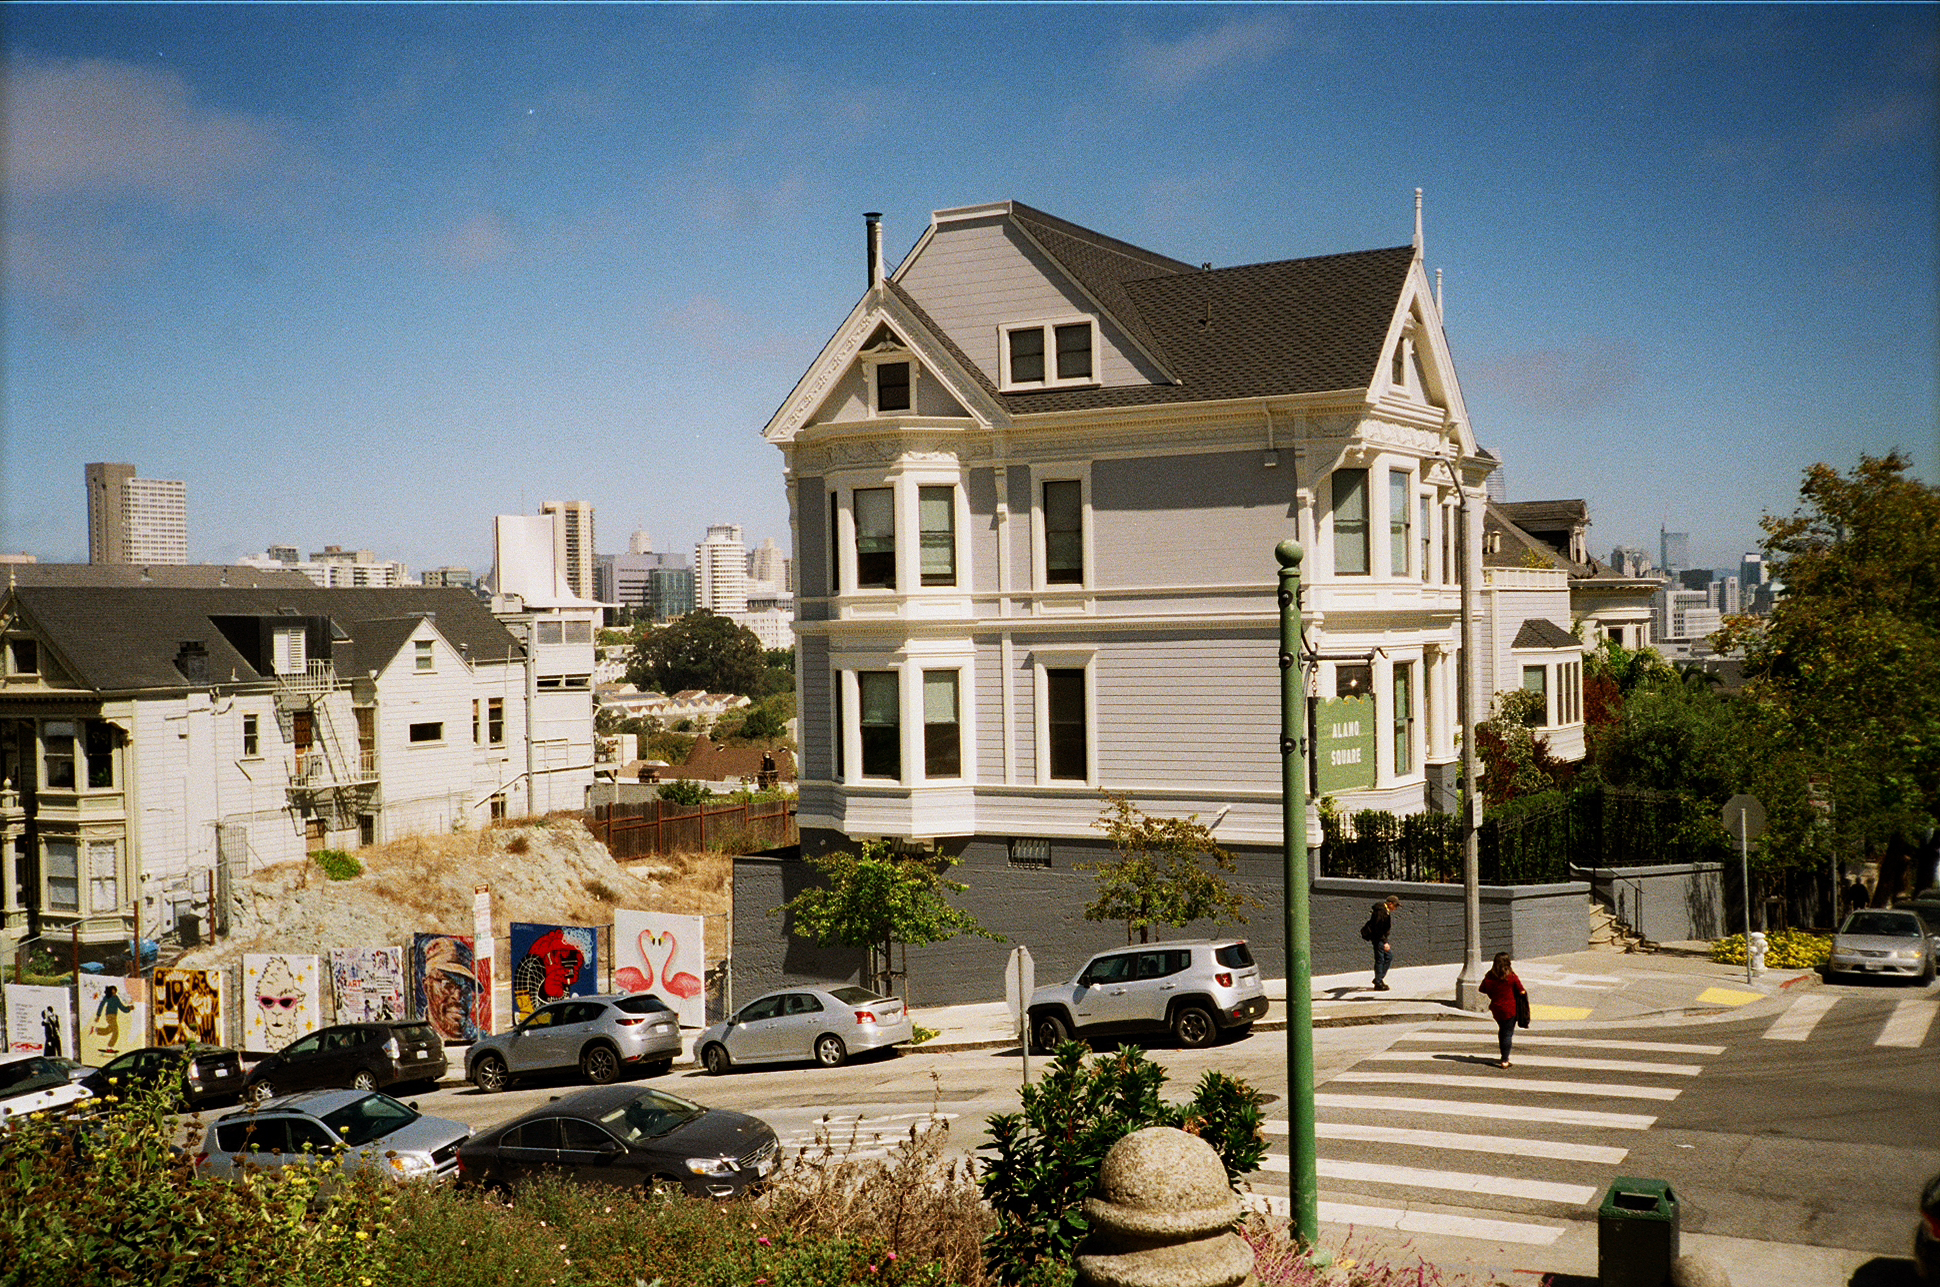 San Francisco on film by London based photographer Ailera Stone